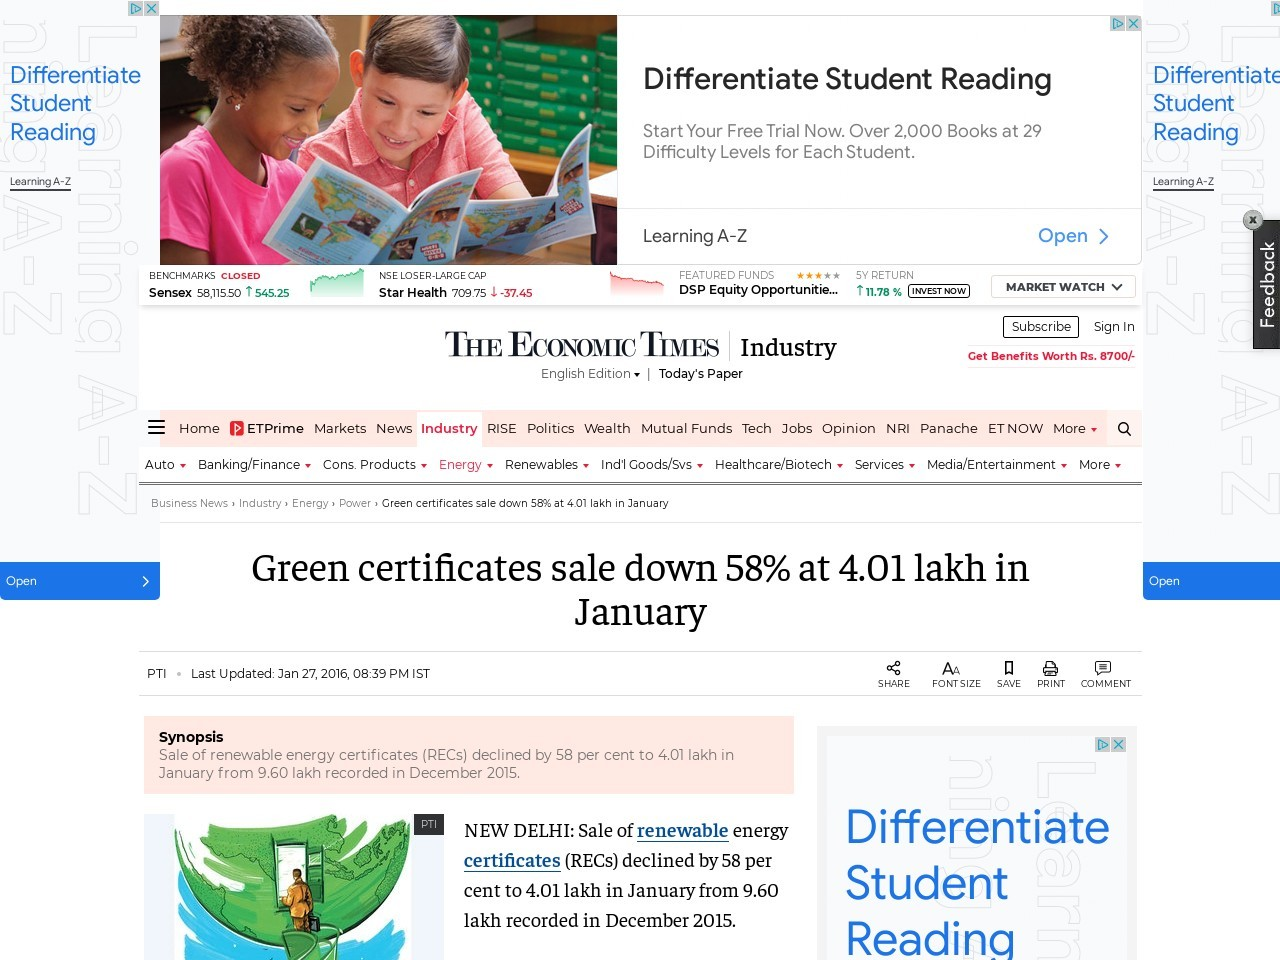 Green certificates sale down 58% at 4.01 lakh in January